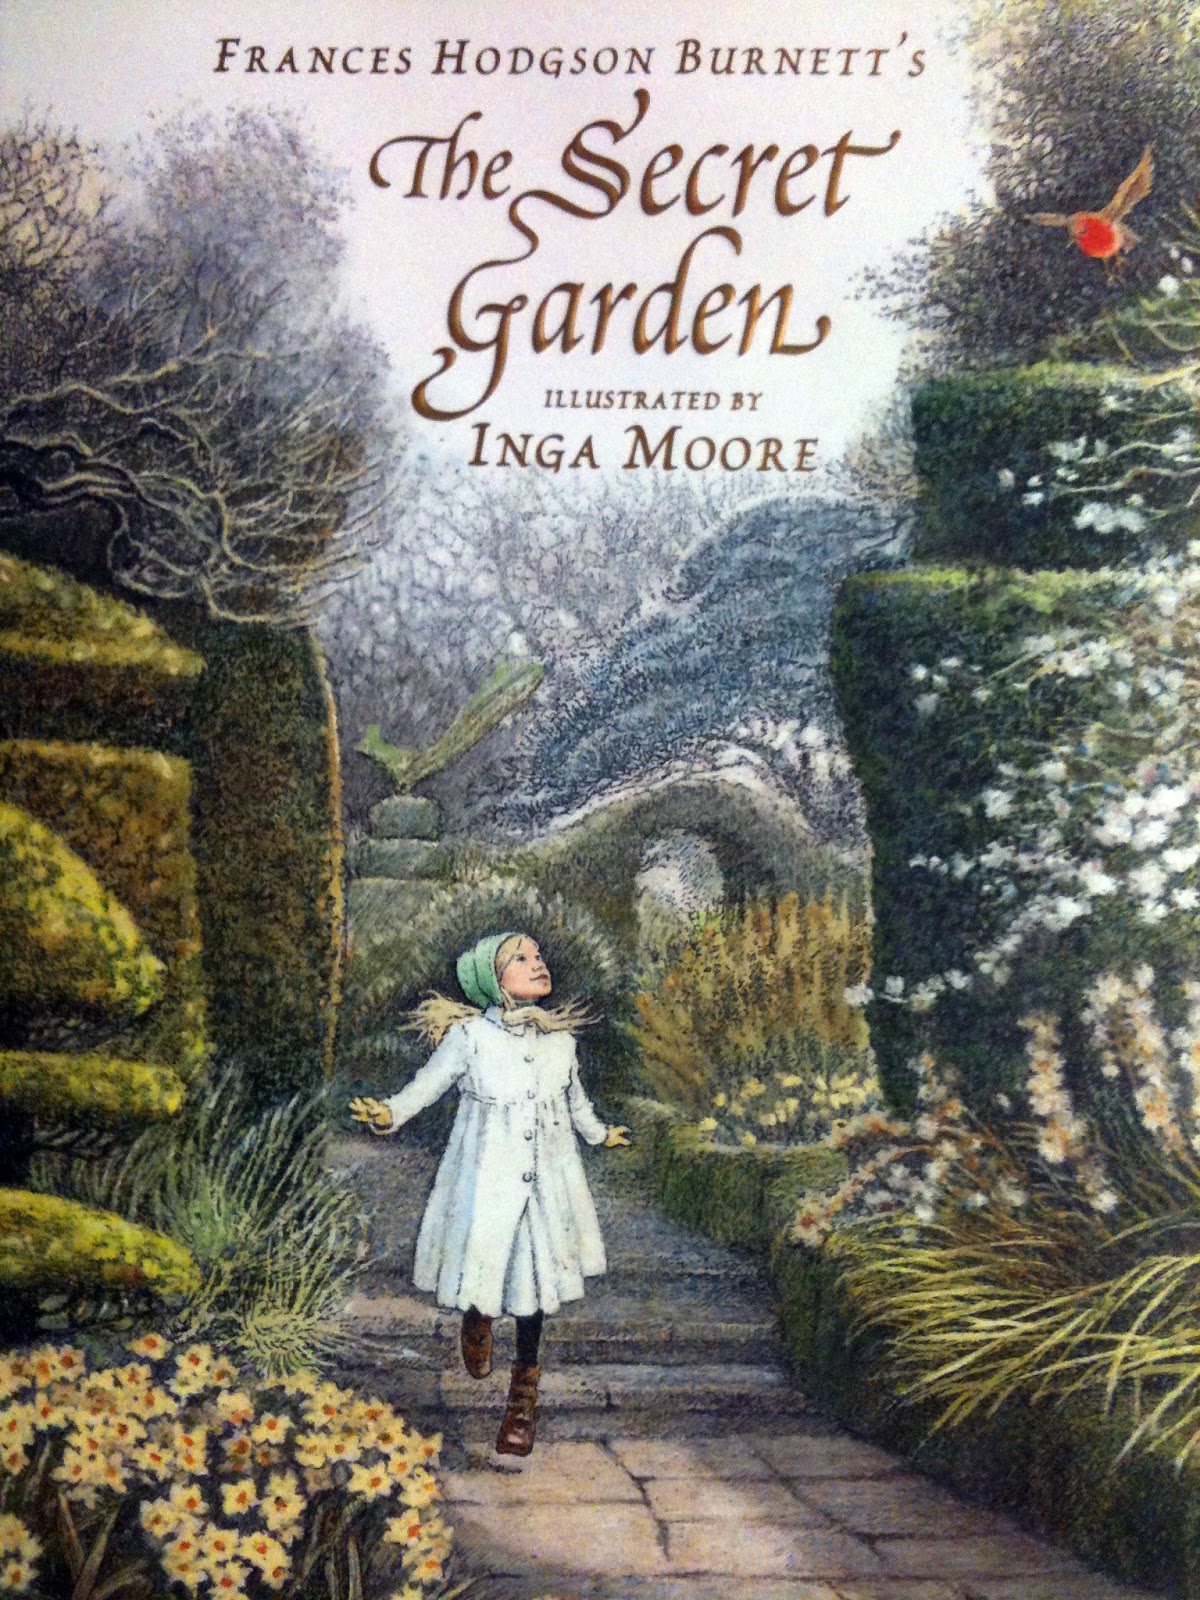 Surface fragments children 39 s illustration artist profile inga moore - El jardin secreto frances hodgson burnett ...